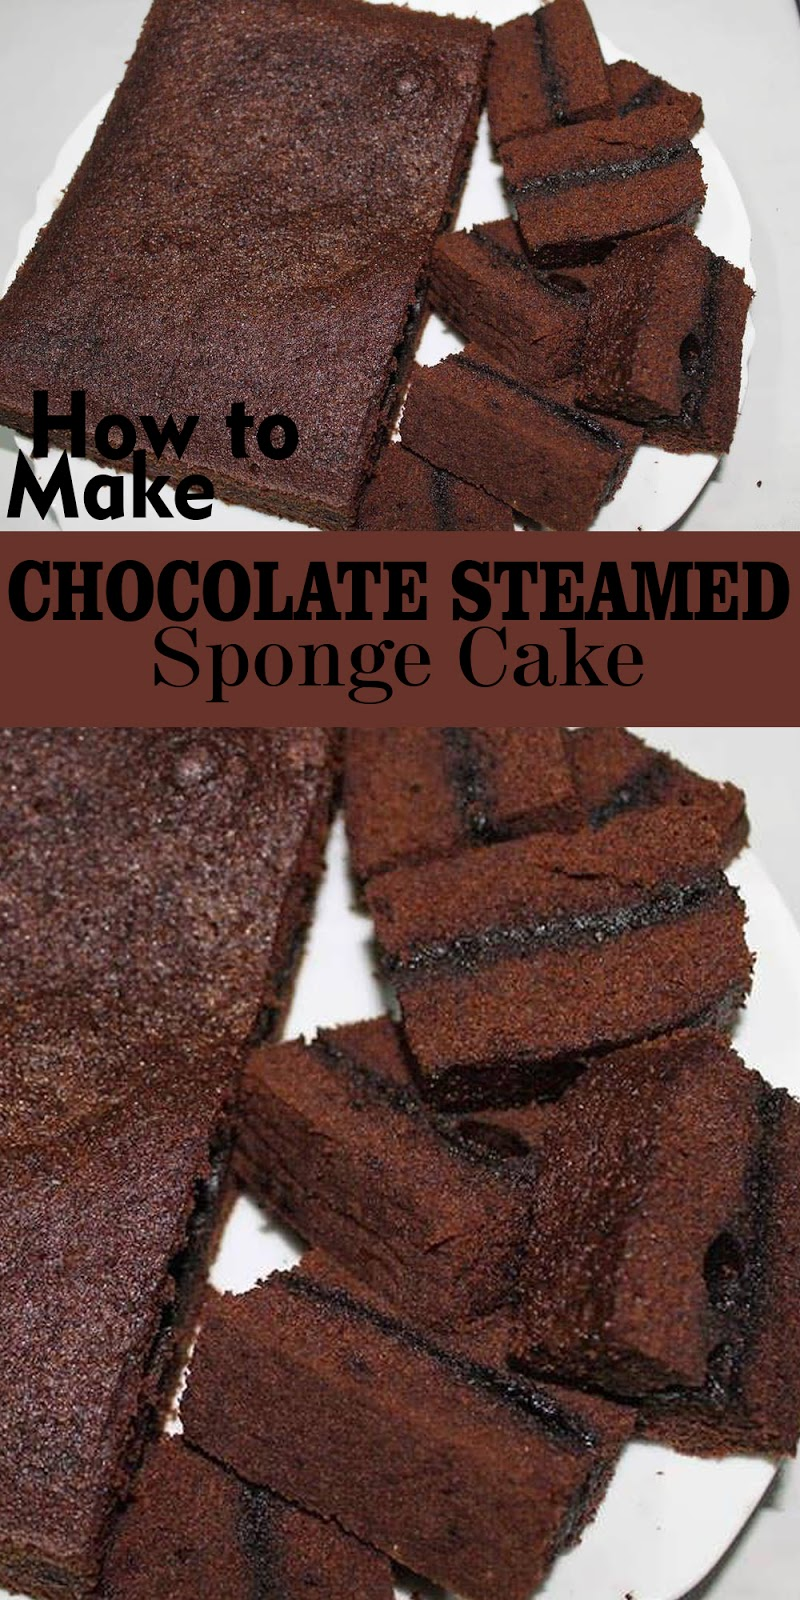 CHOCOLATE STEAMED SPONGE CAKE